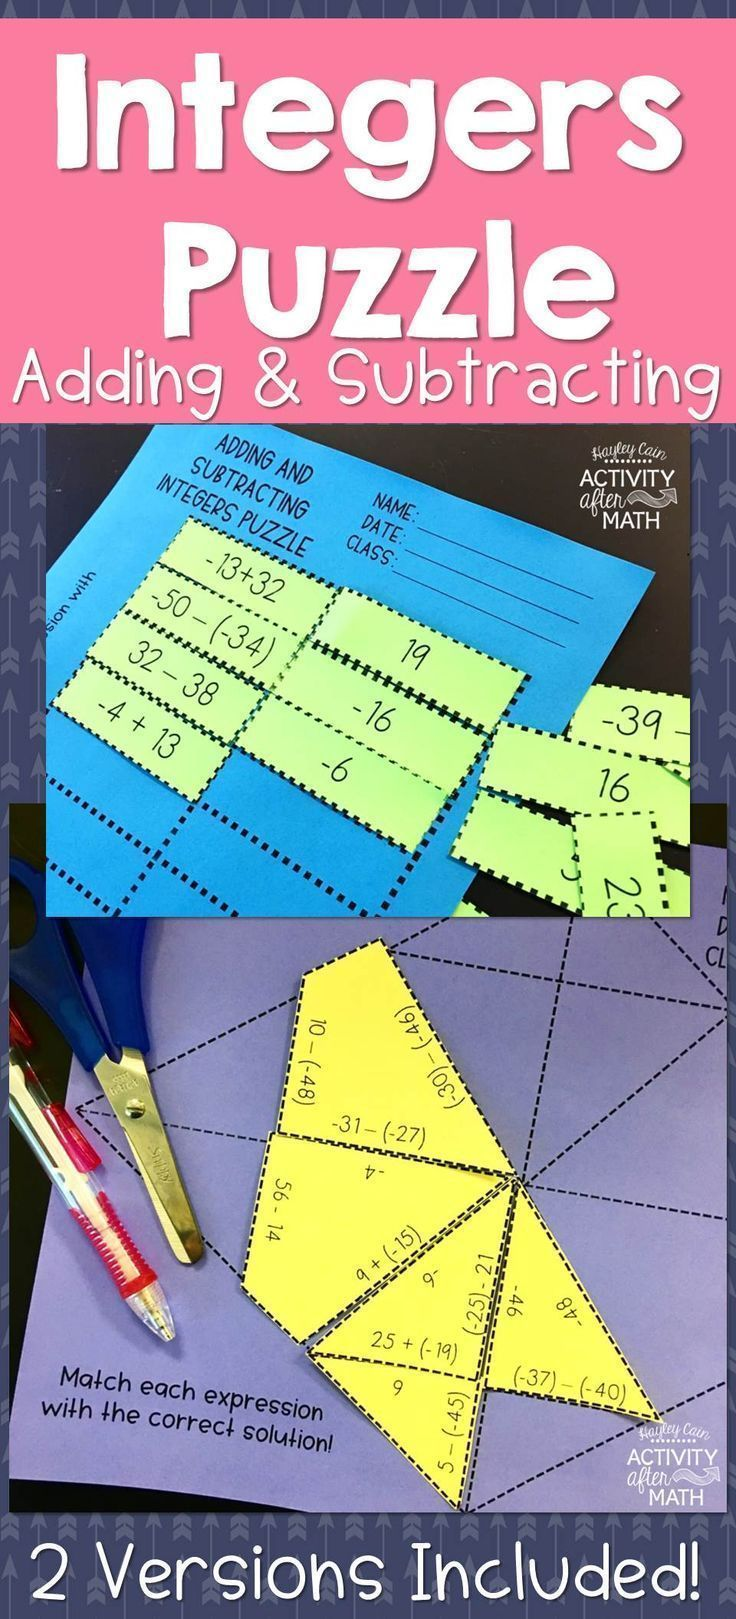 Adding And Subtracting Integers Puzzle Matching Puzzle And Tarsia Style Puzzle Inc Adding And Subtracting Integers Adding And Subtracting Subtracting Integers Adding and subtracting integers fun